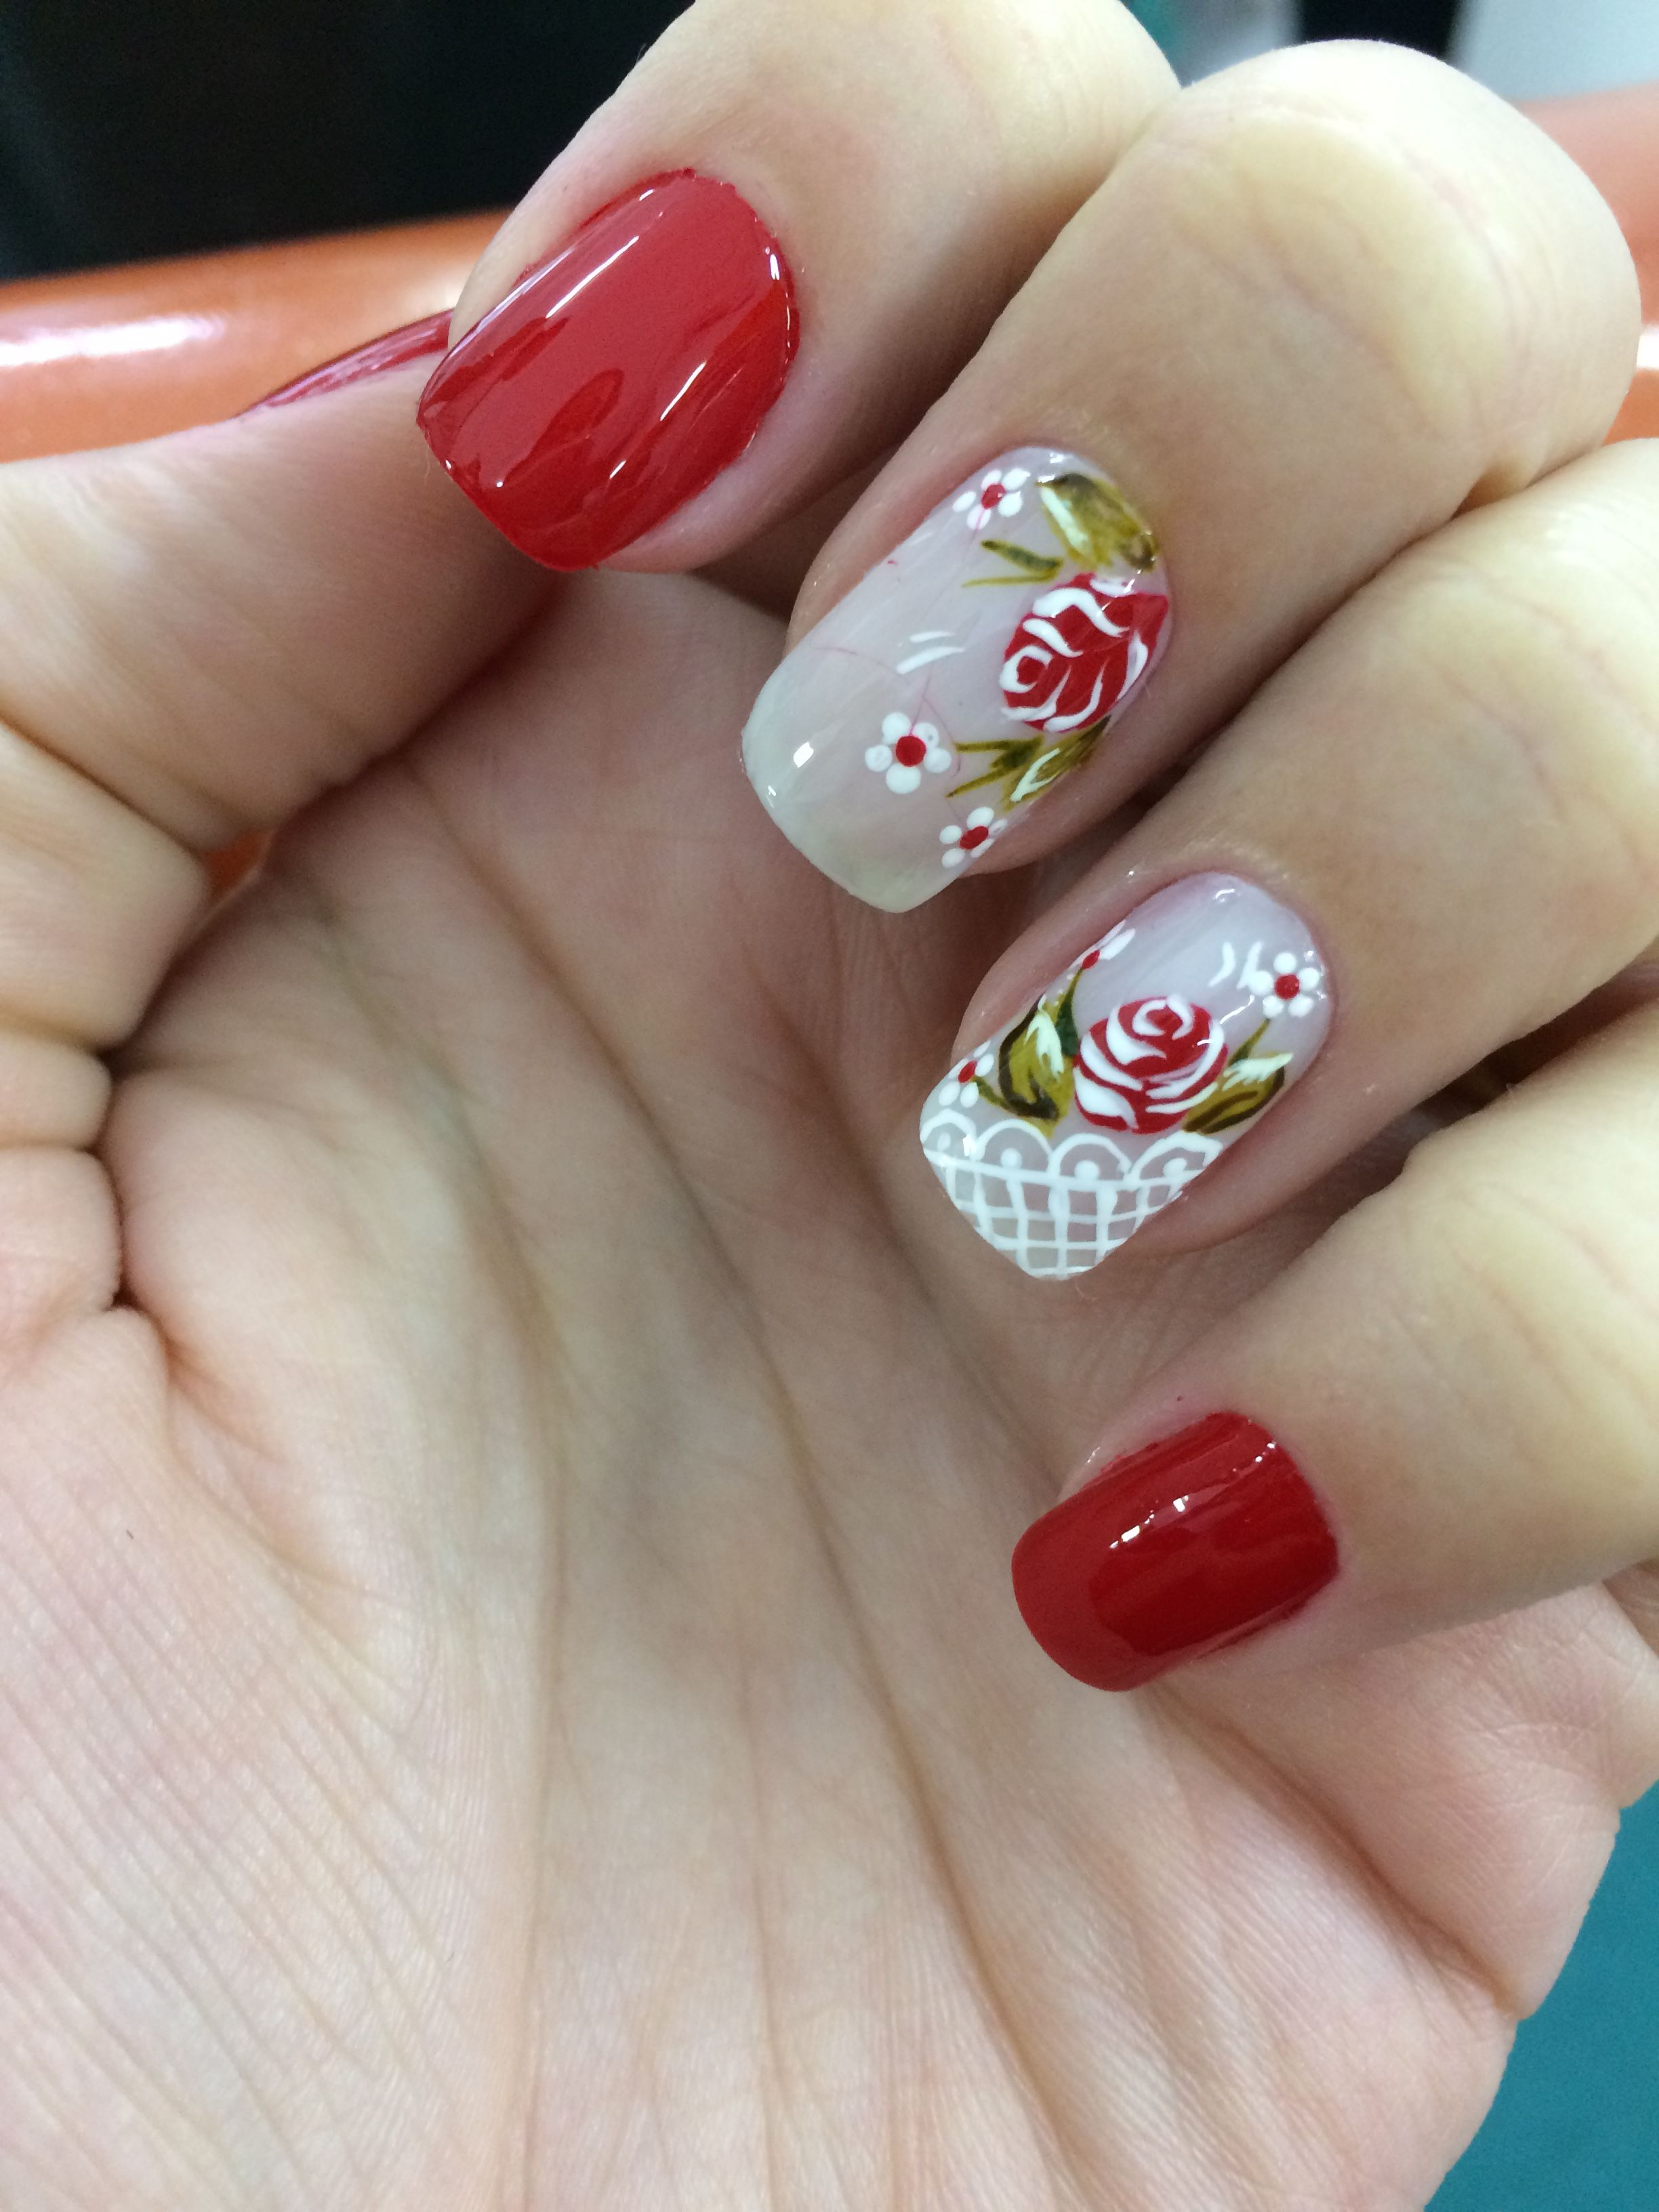 Floral Nail Art Two Accent Nails With Pretty Flowers Uas